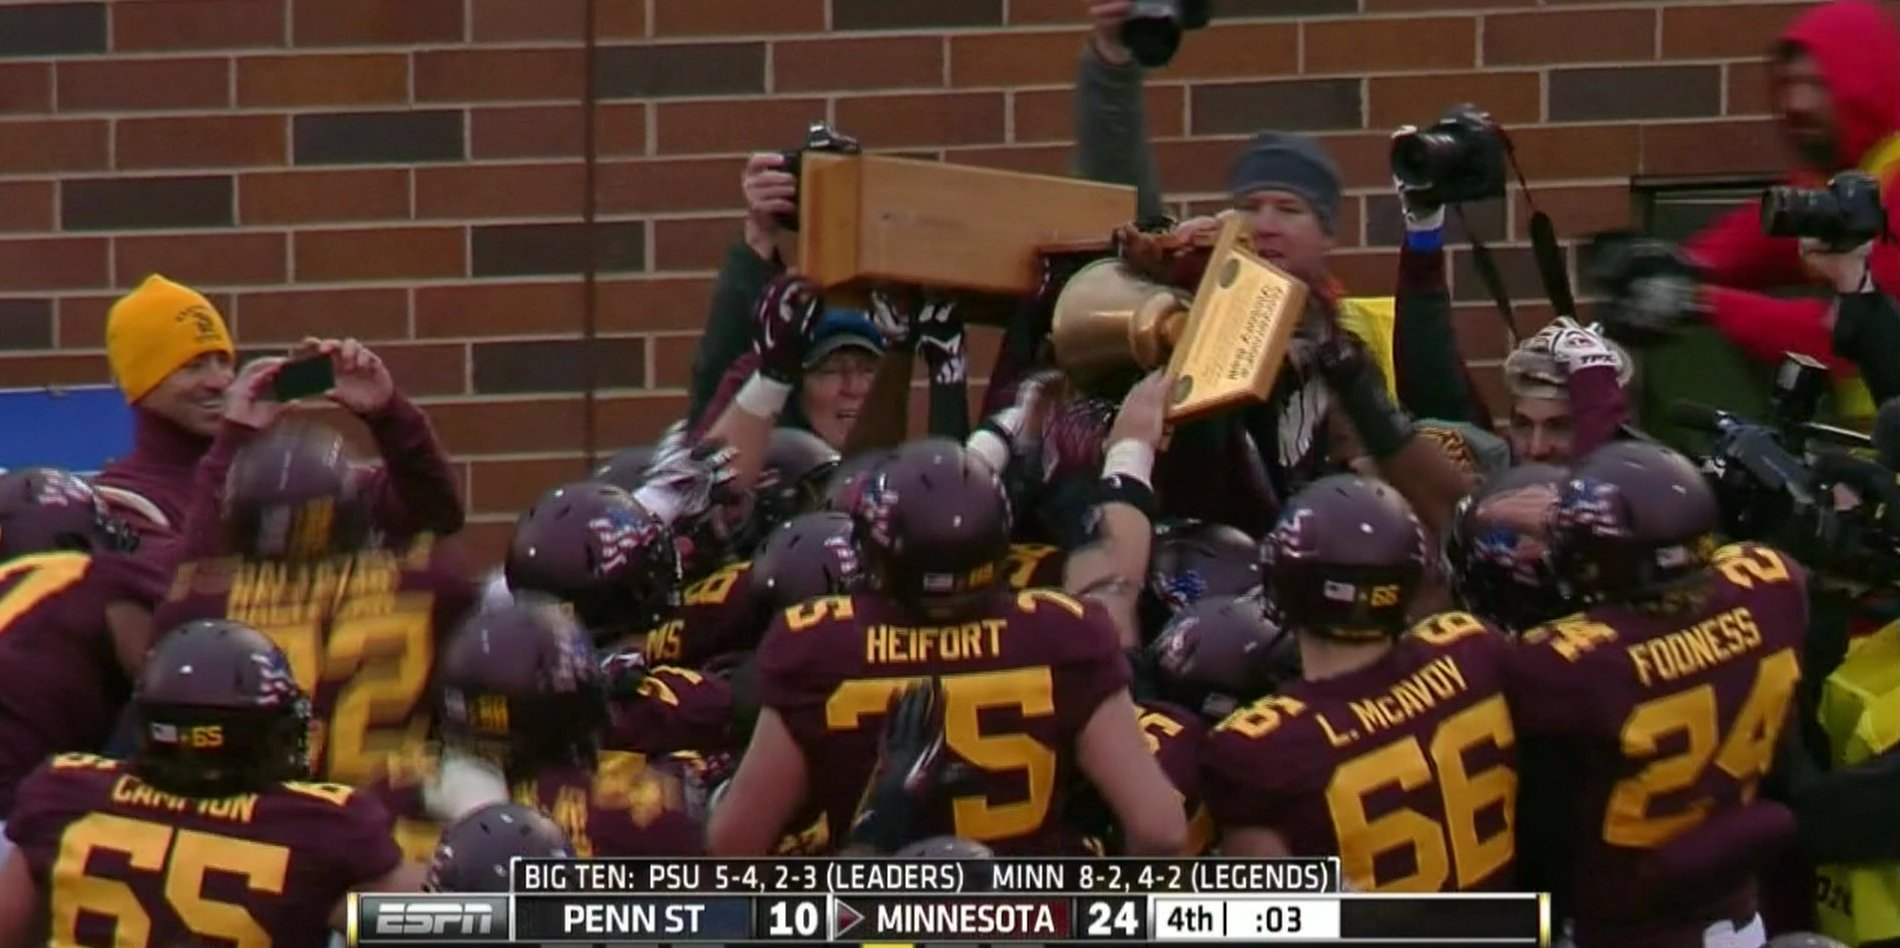 Minnesota breaks Governor's Victory Bell trophy after beating Penn State